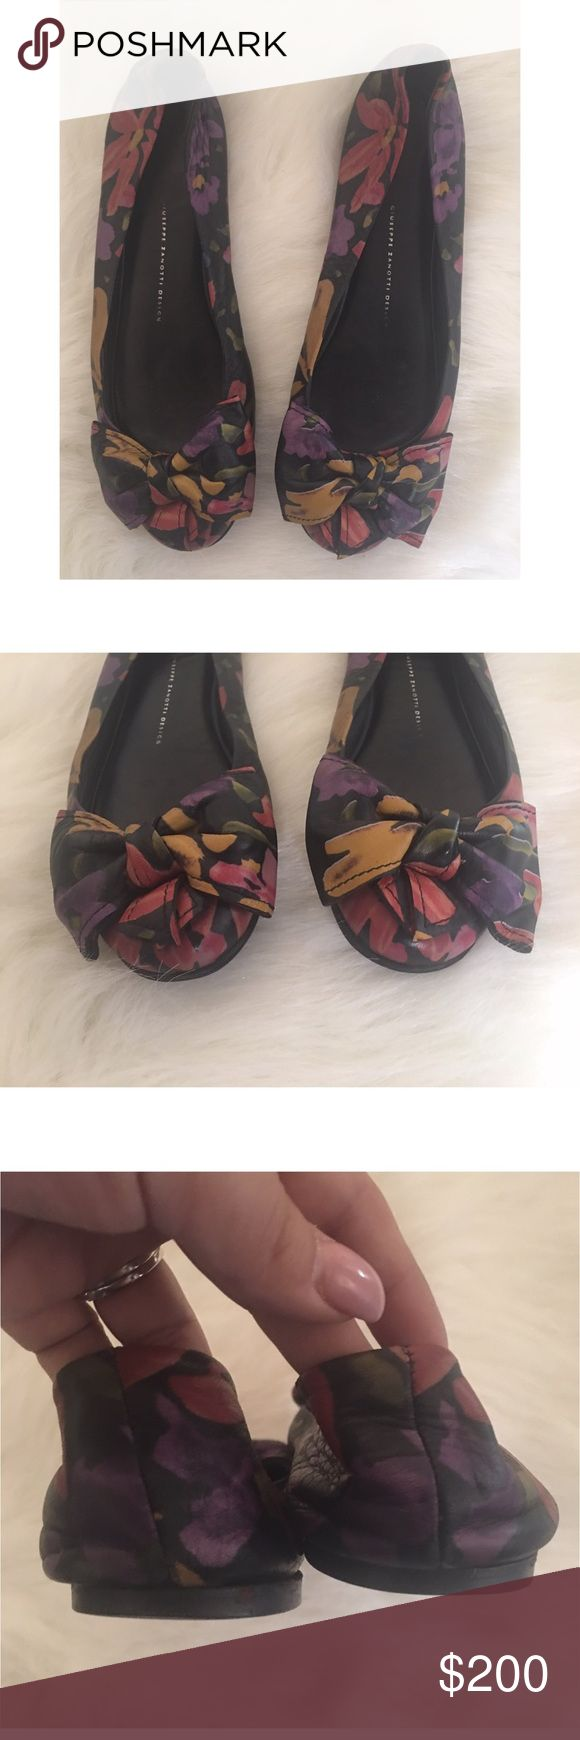 Giuseppe Zanotti leather round toe bow flat floral Gorgeous and in excellent shape! Leather round toe ballet flat with bow, multi colored floral pattern. Giuseppe Zanotti Shoes Flats & Loafers